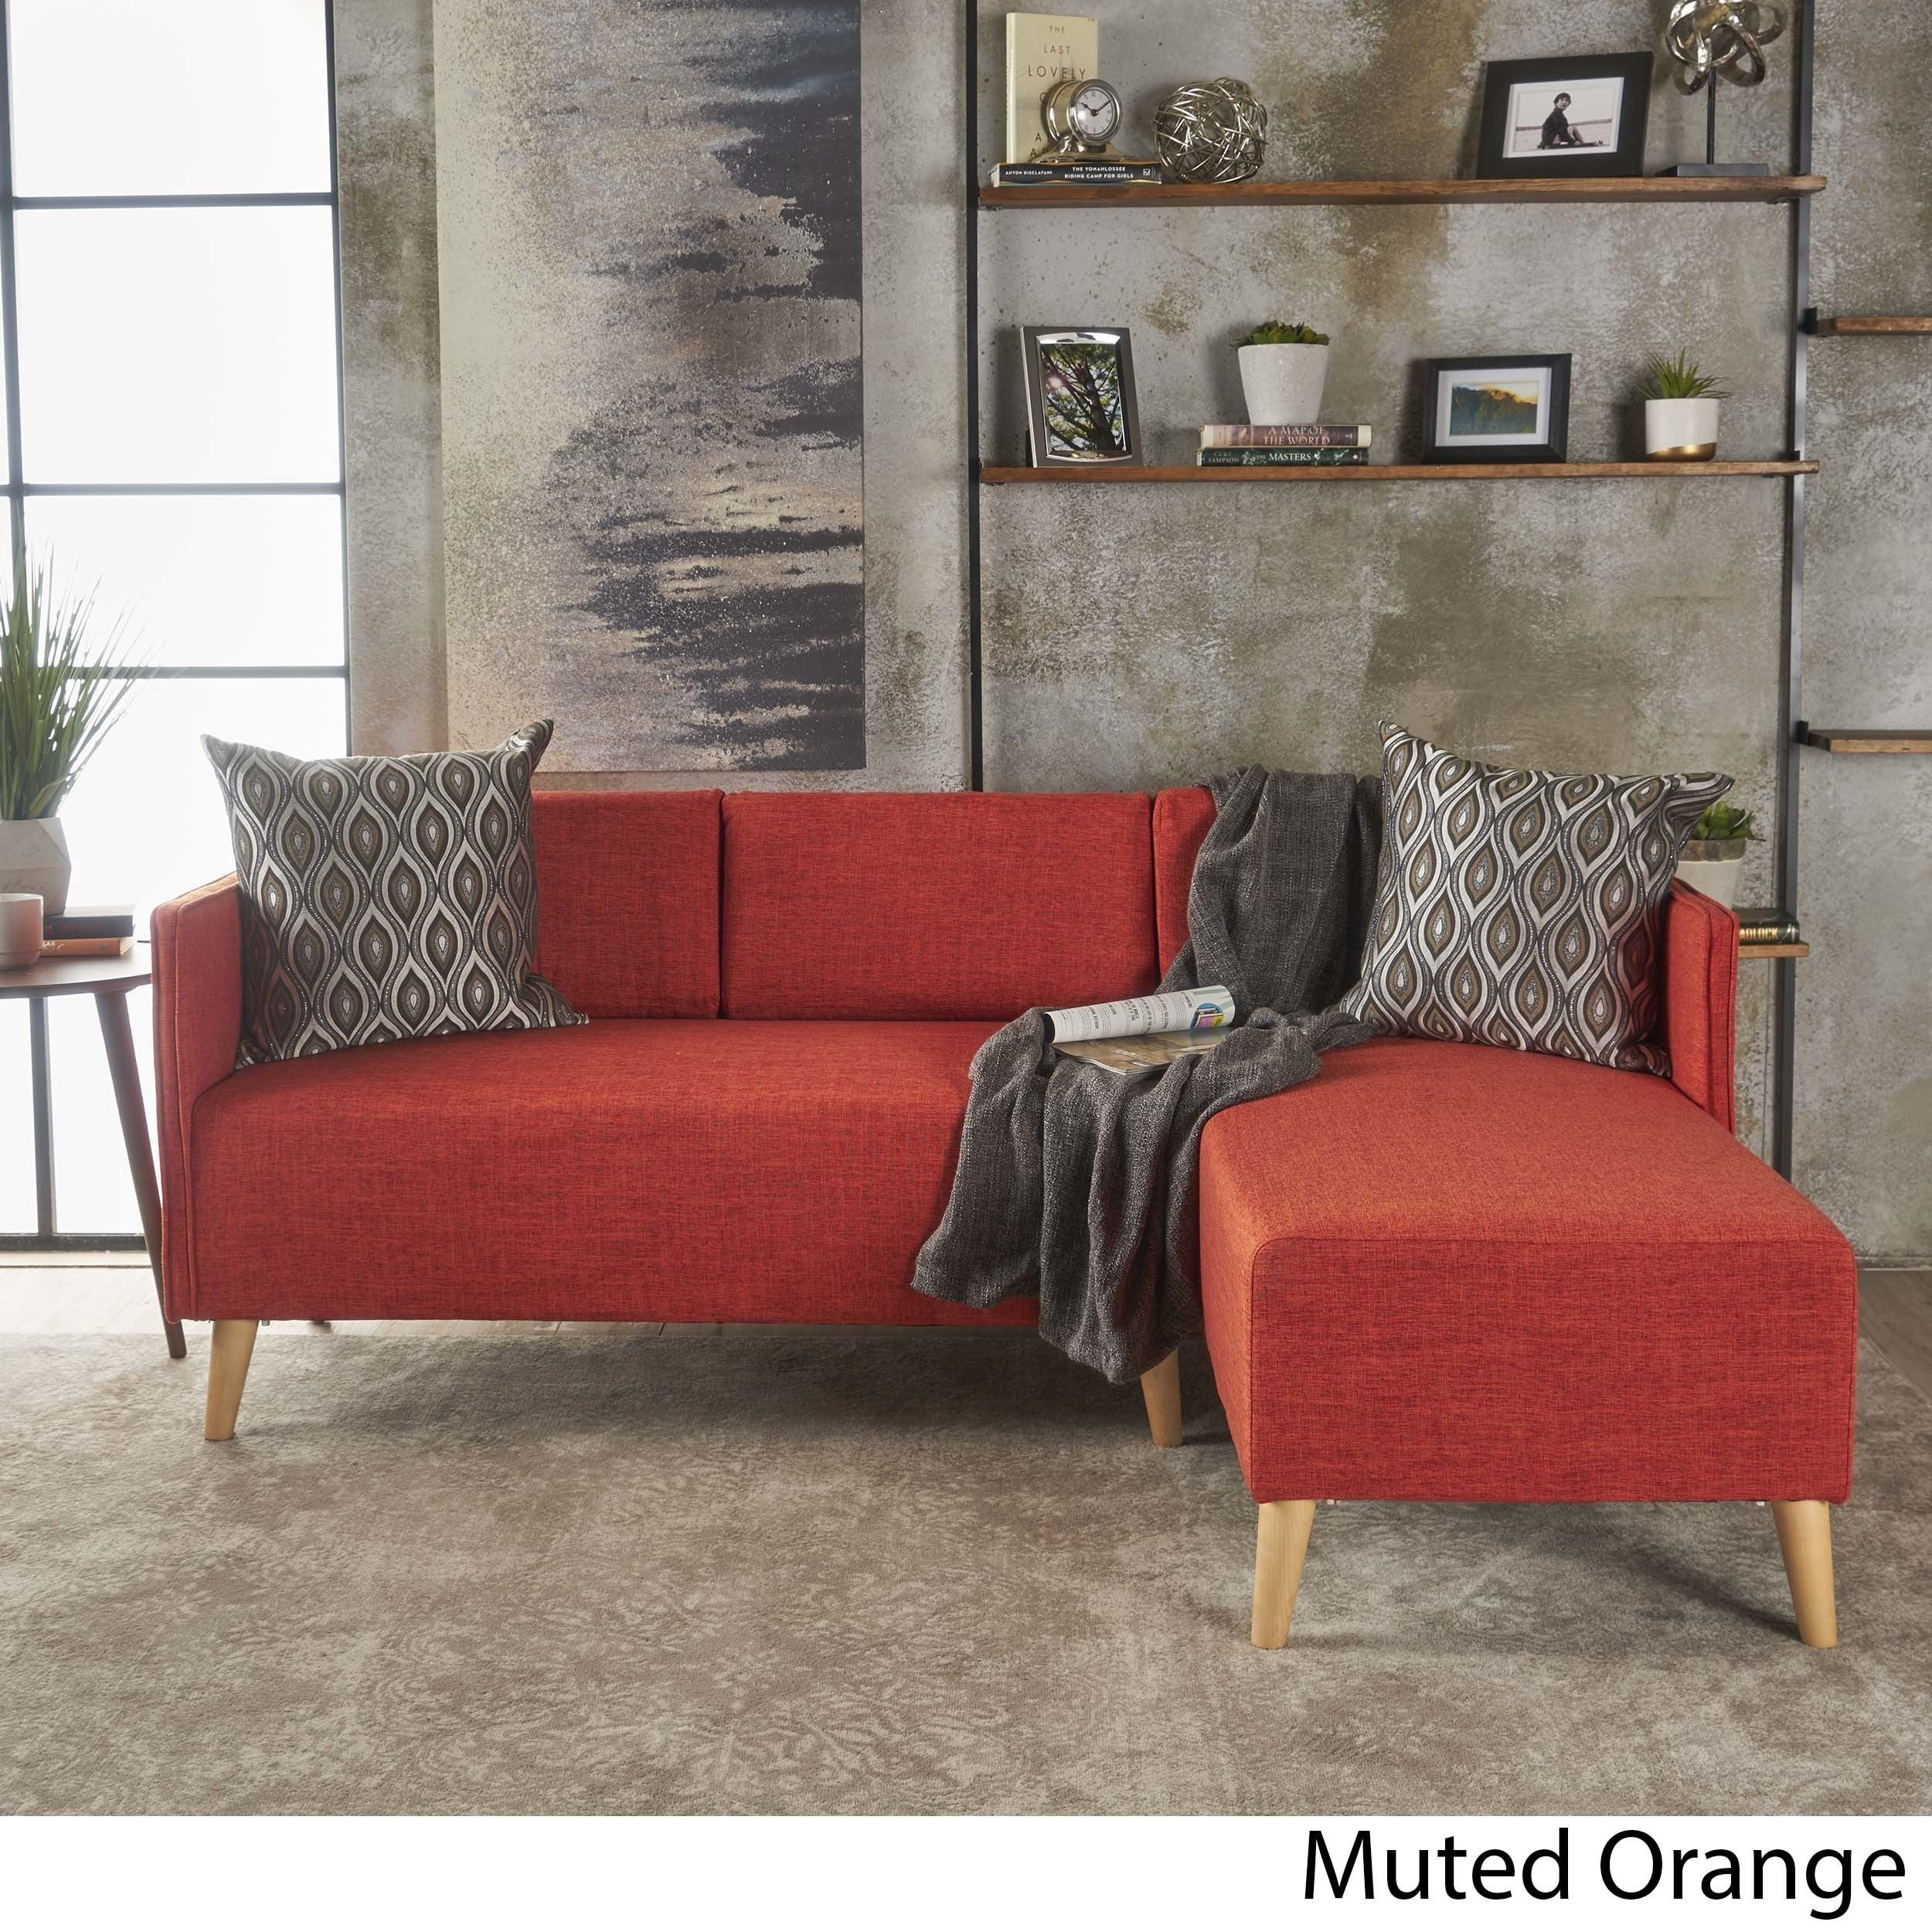 Orange Sofas Couches Online At Our Best Living Room Furniture Deals